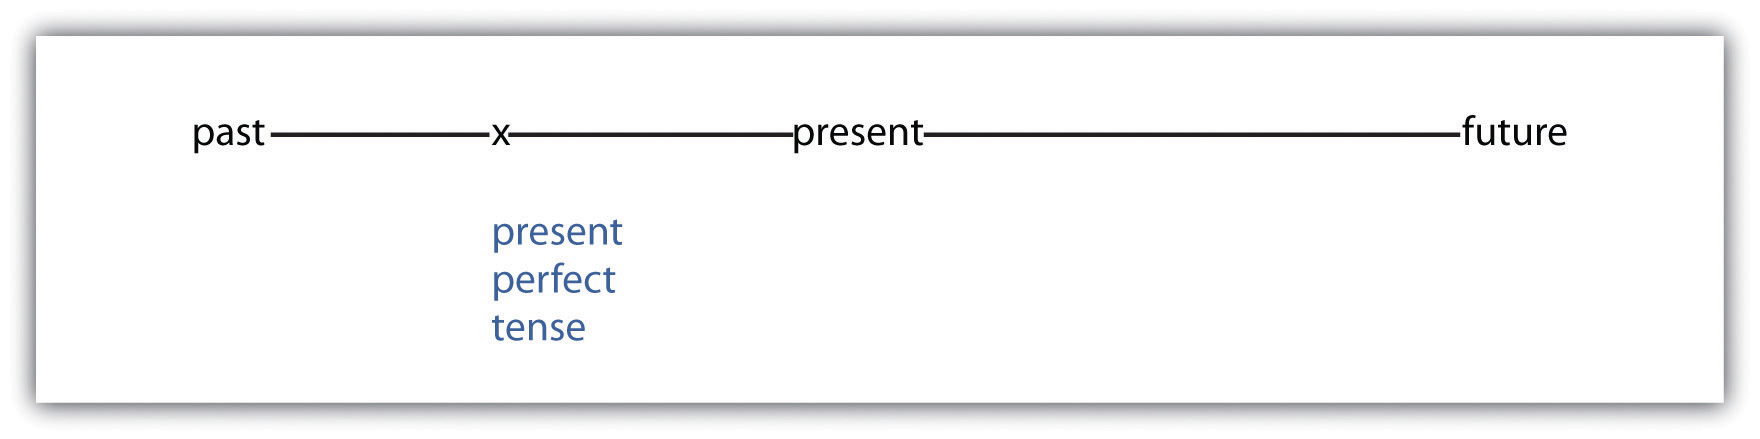 The past perfect tense has a connection with the past and the present.